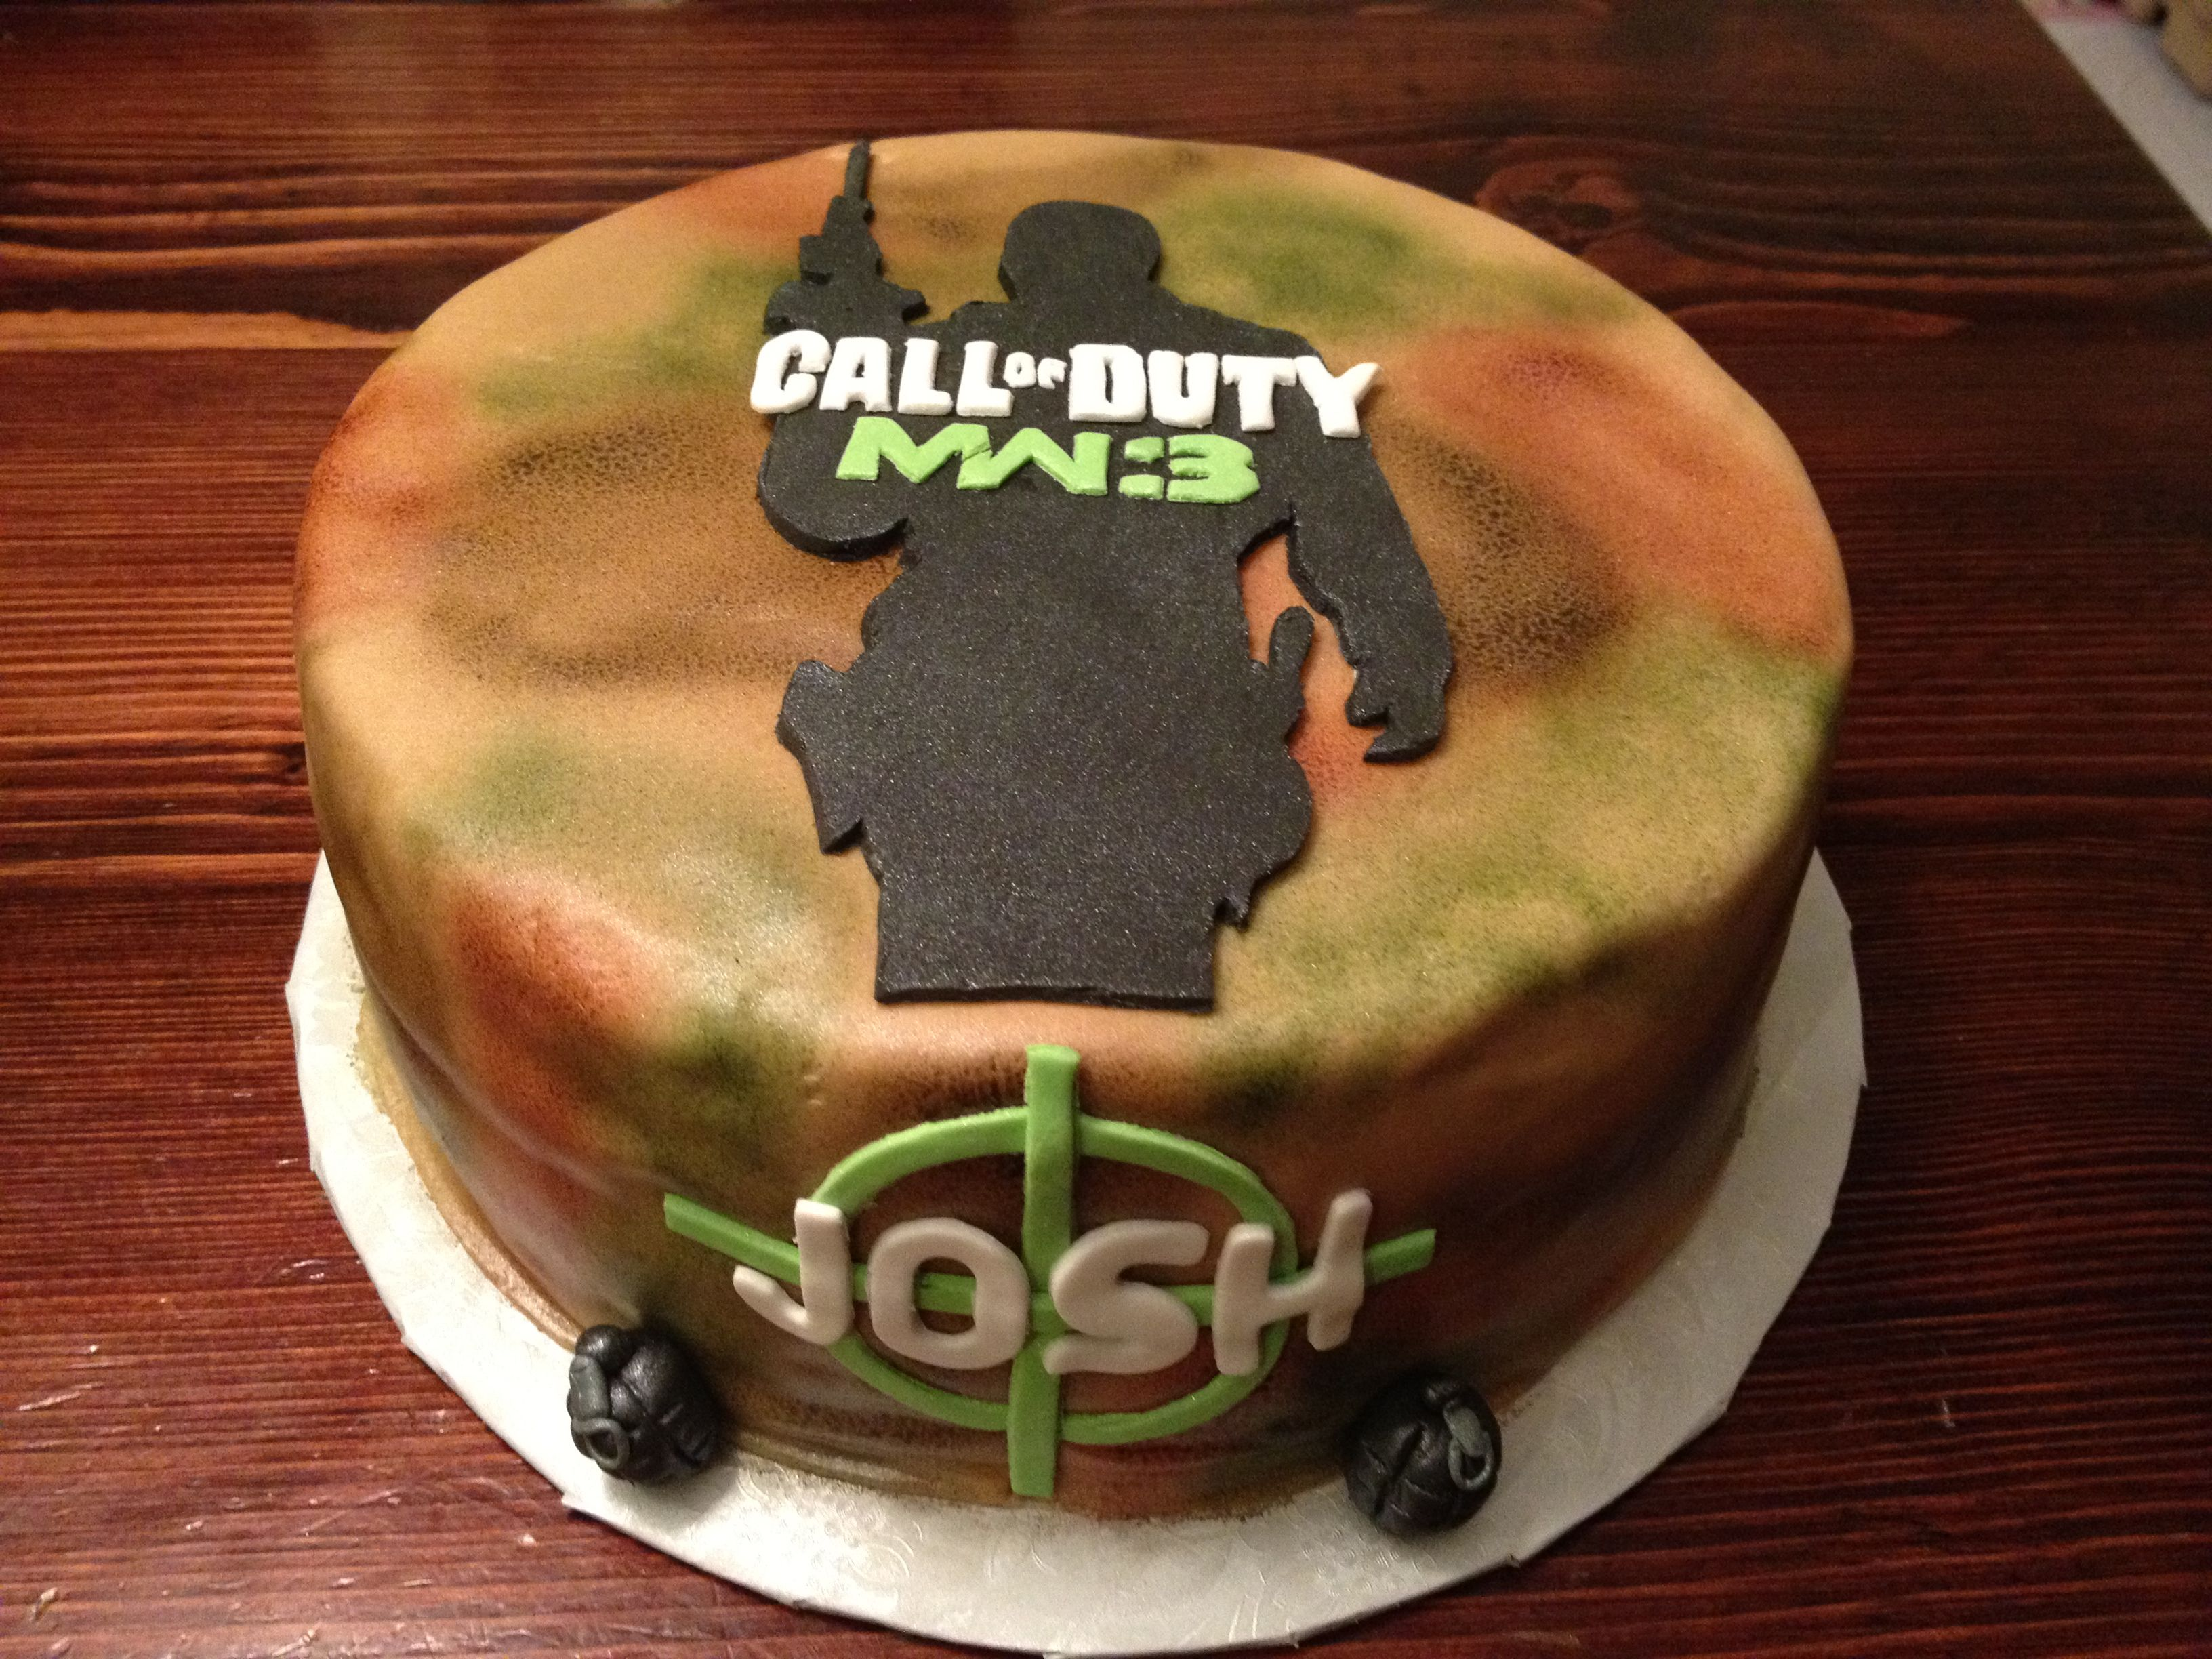 Call of Duty cake with my son's name.